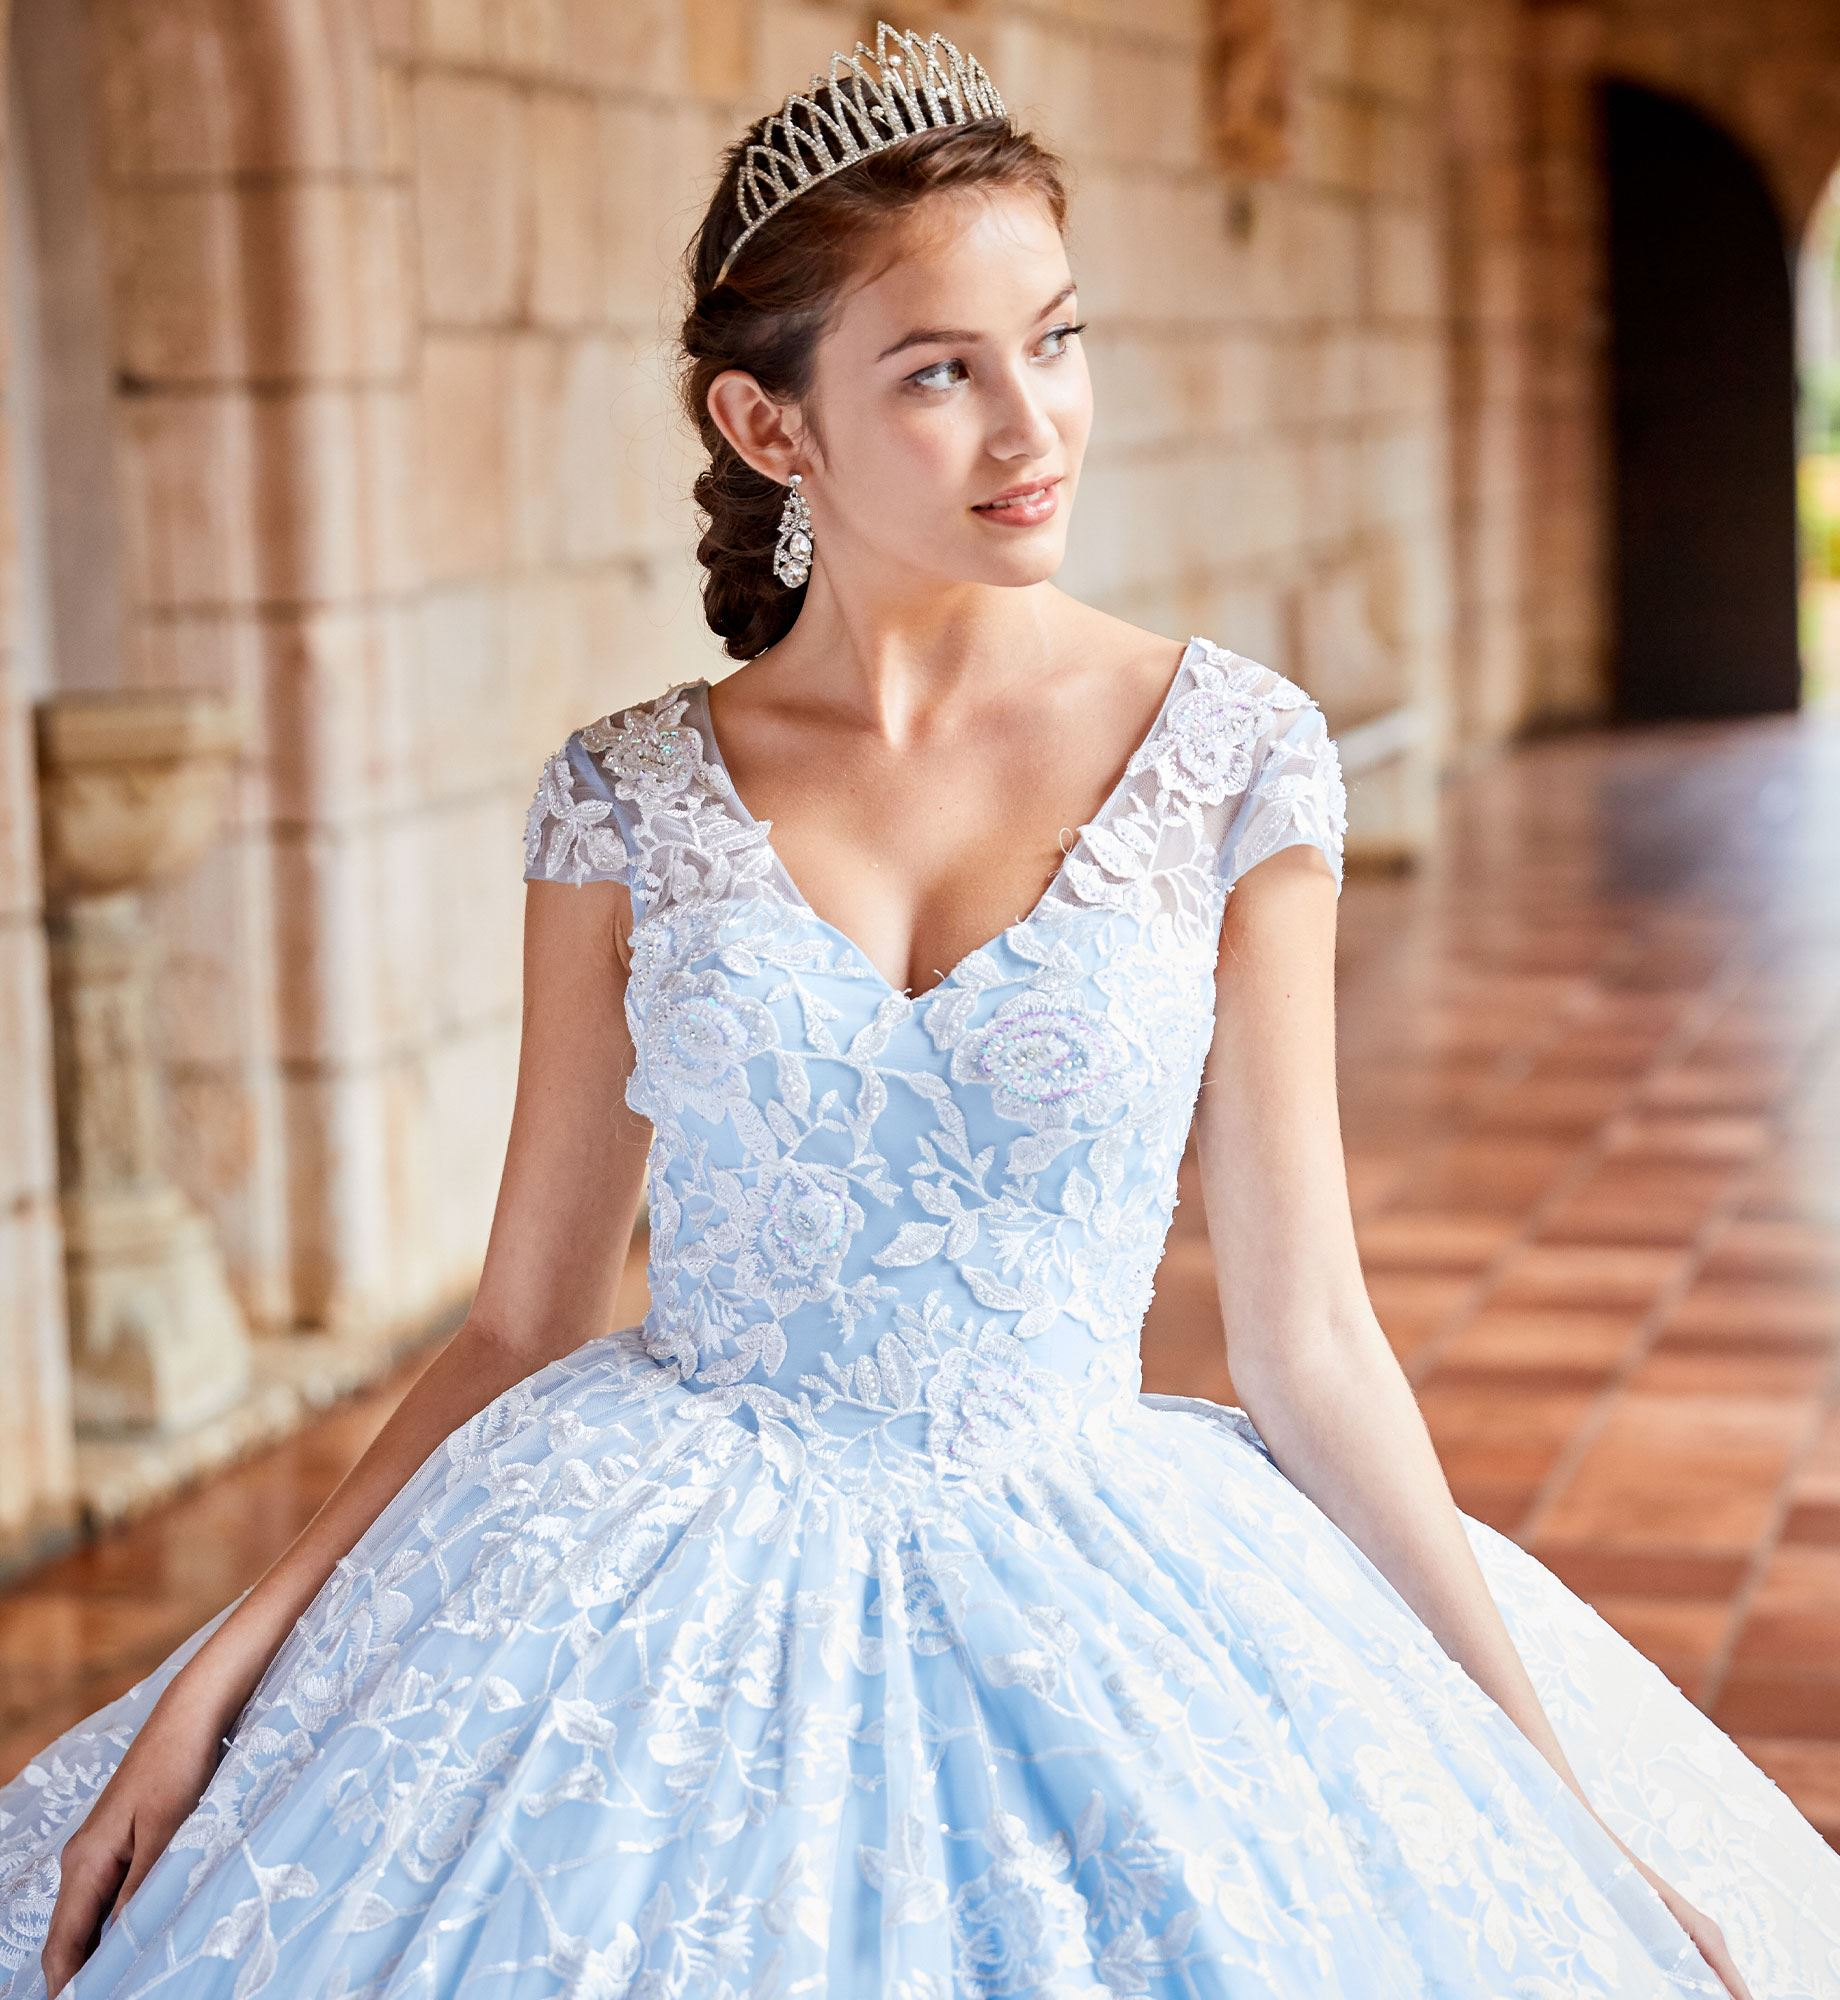 Brunette model in short sleeve blue quinceañera dress